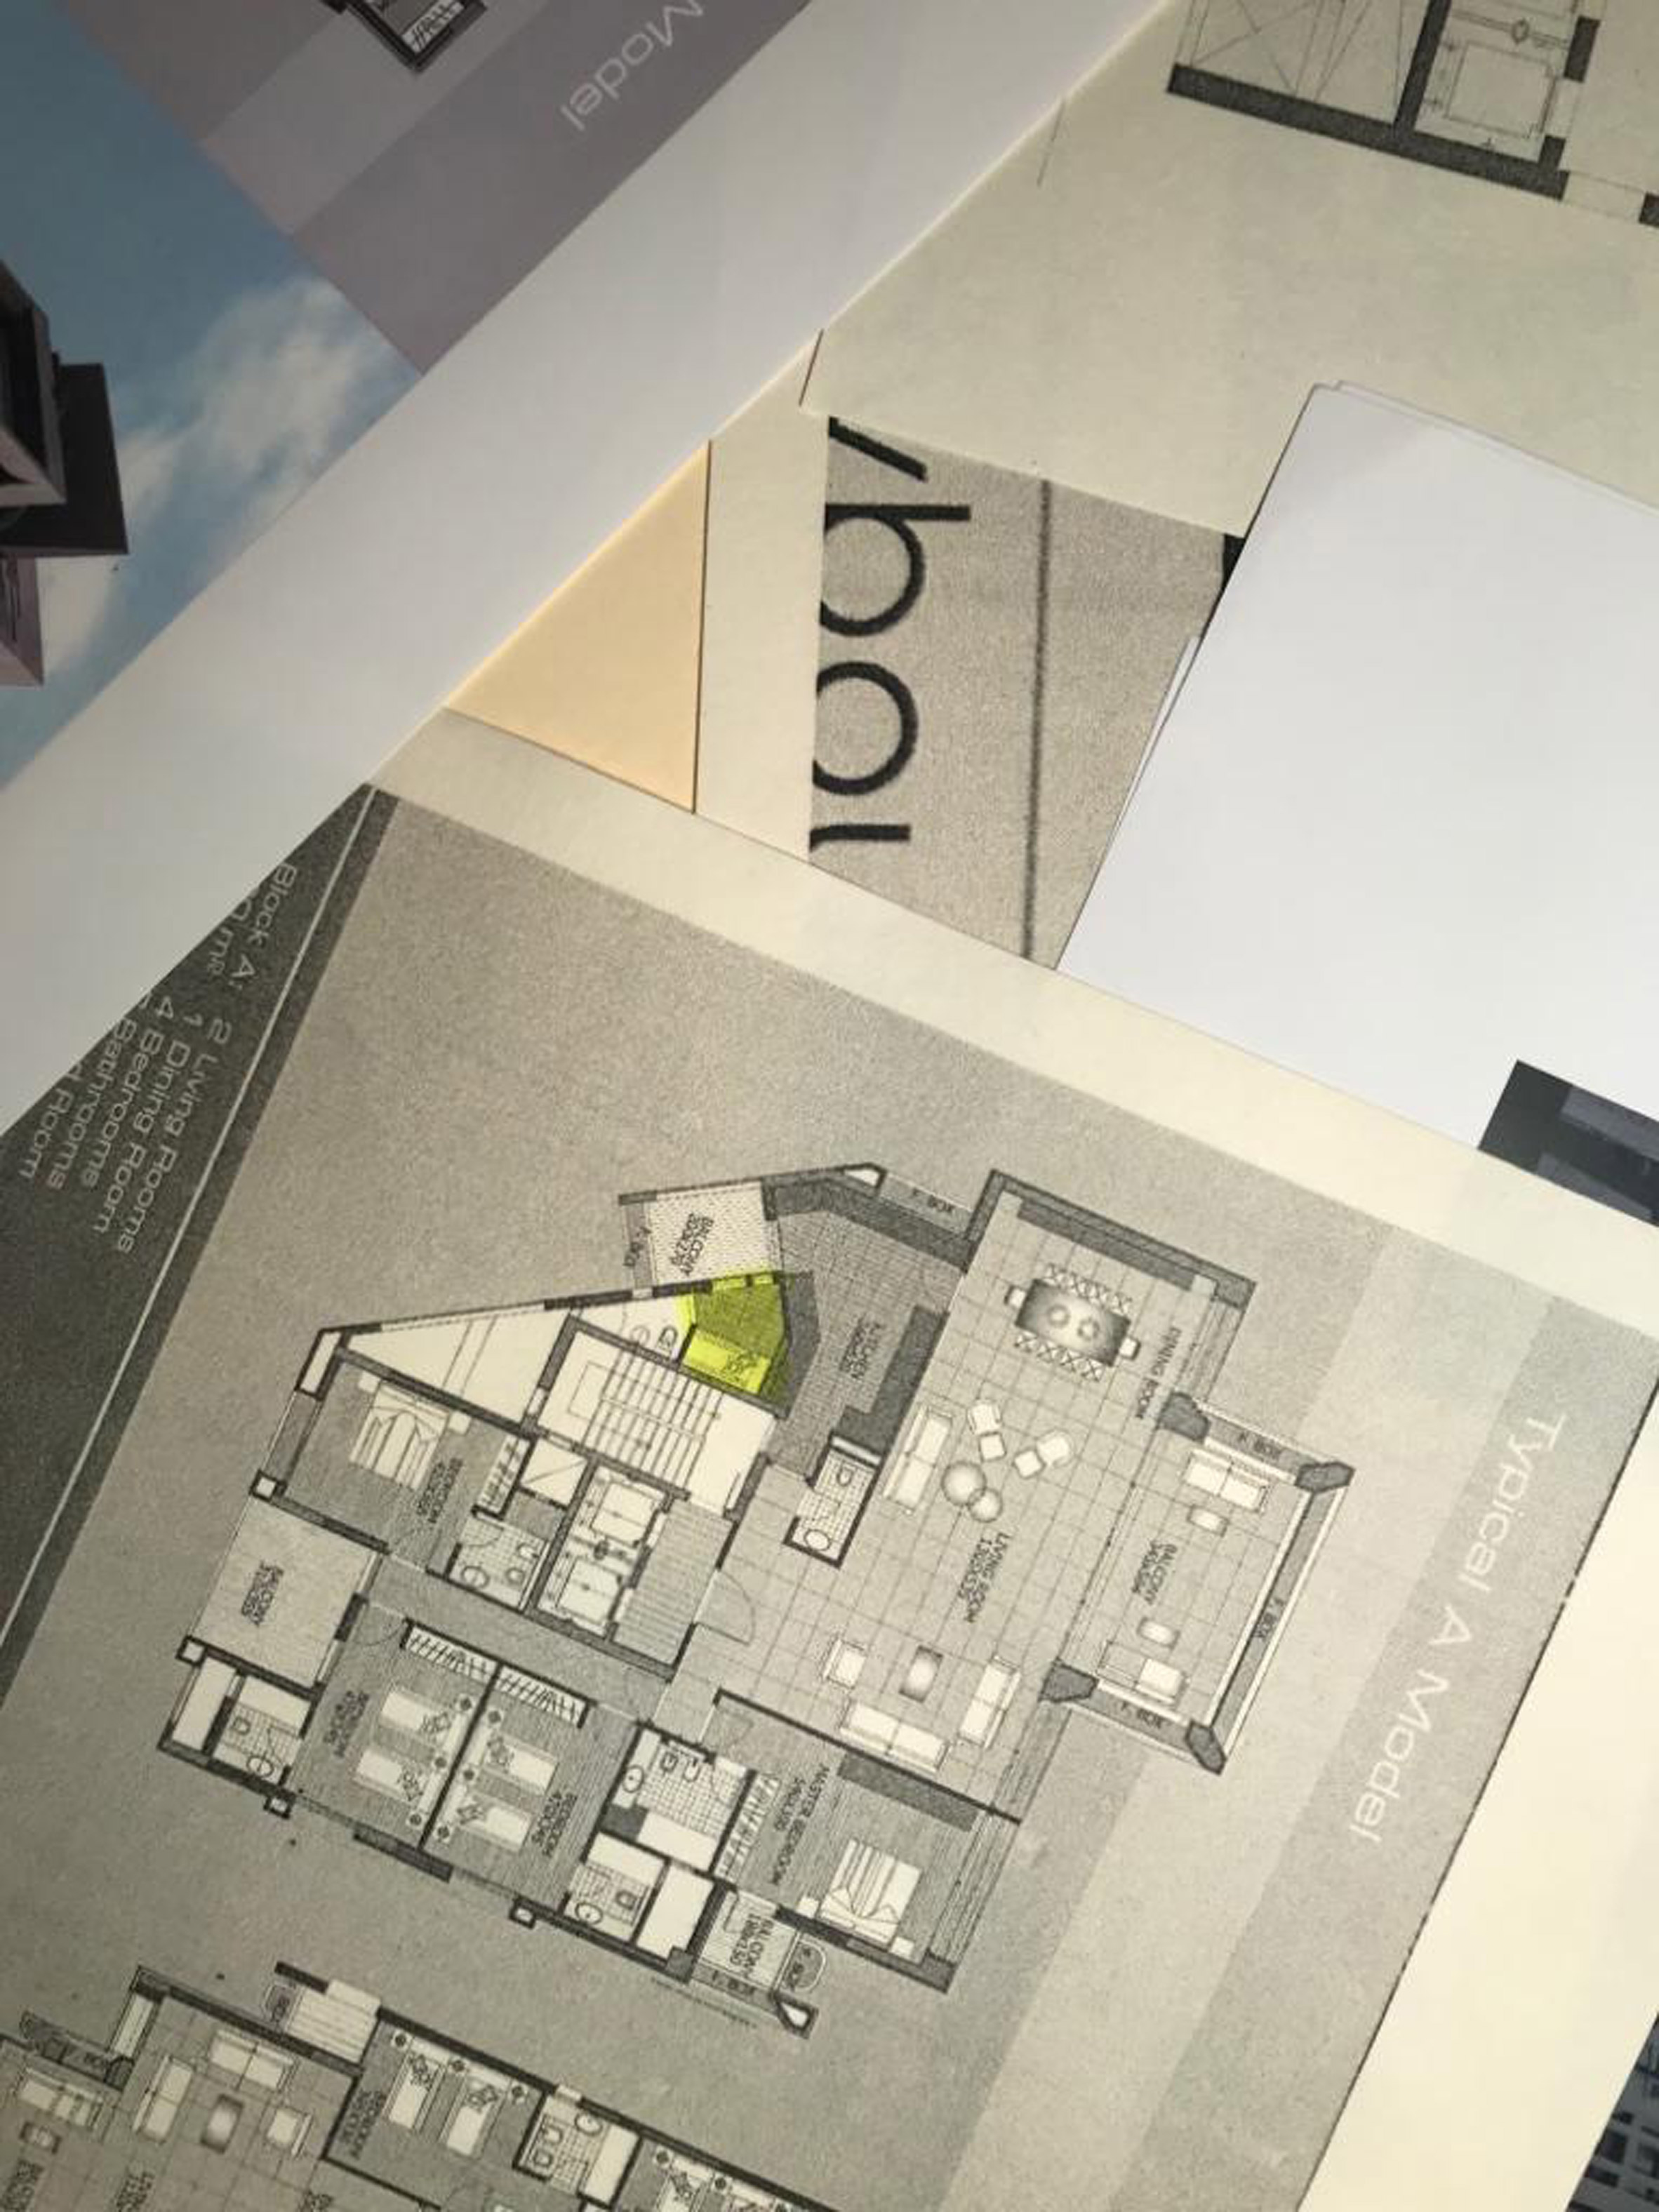 The architect, the law, the sponsor and their maid's room by Public Works at the Sharjah Architecture Triennial